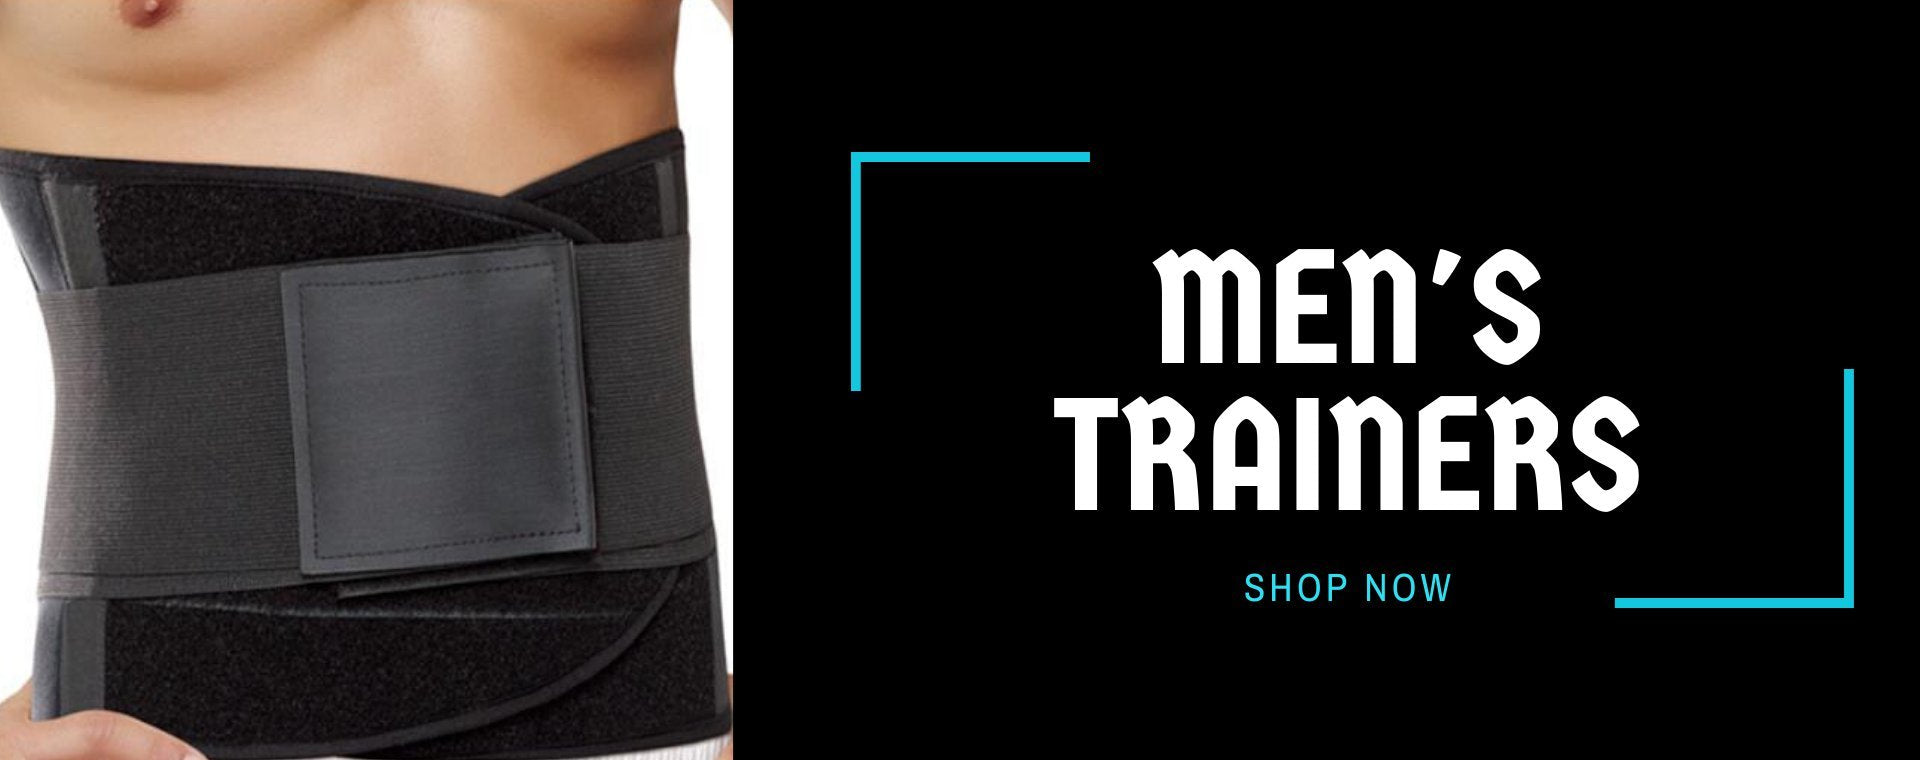 Waist trainers for men